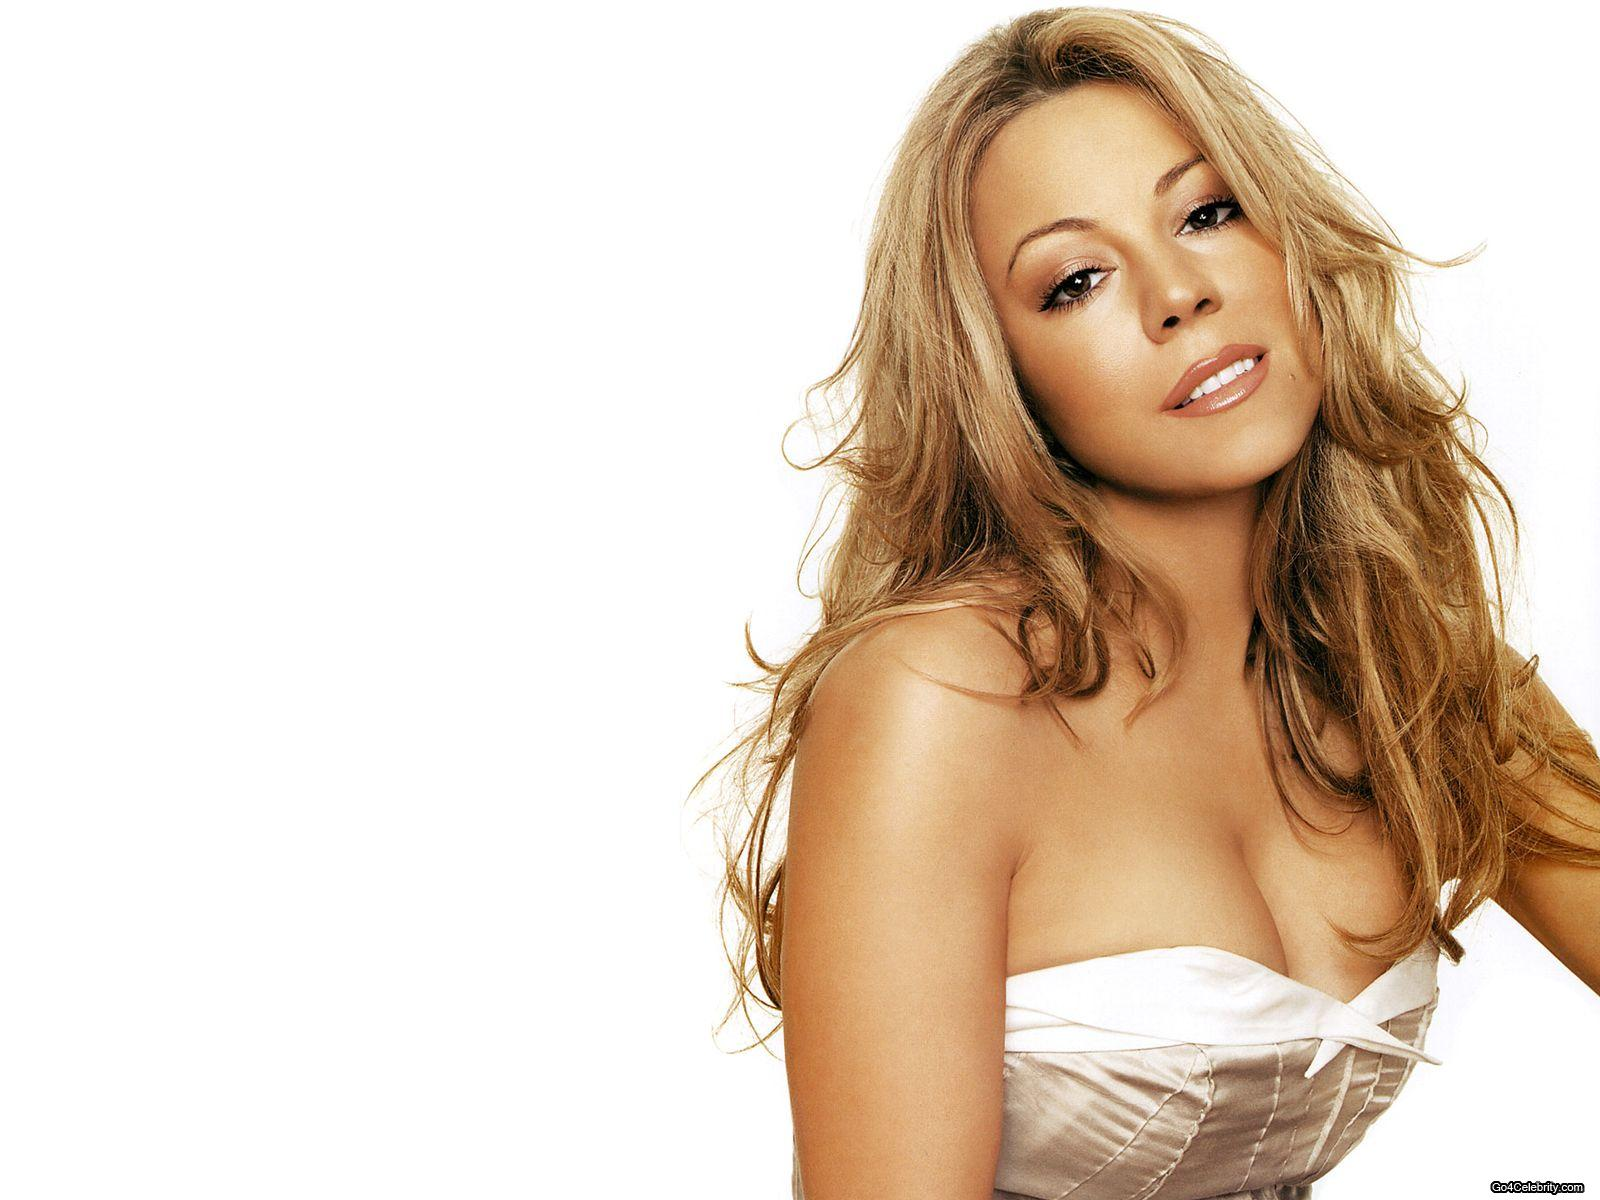 Mariah Carey Mariah Carey Wallpaper 583150 Fanpop